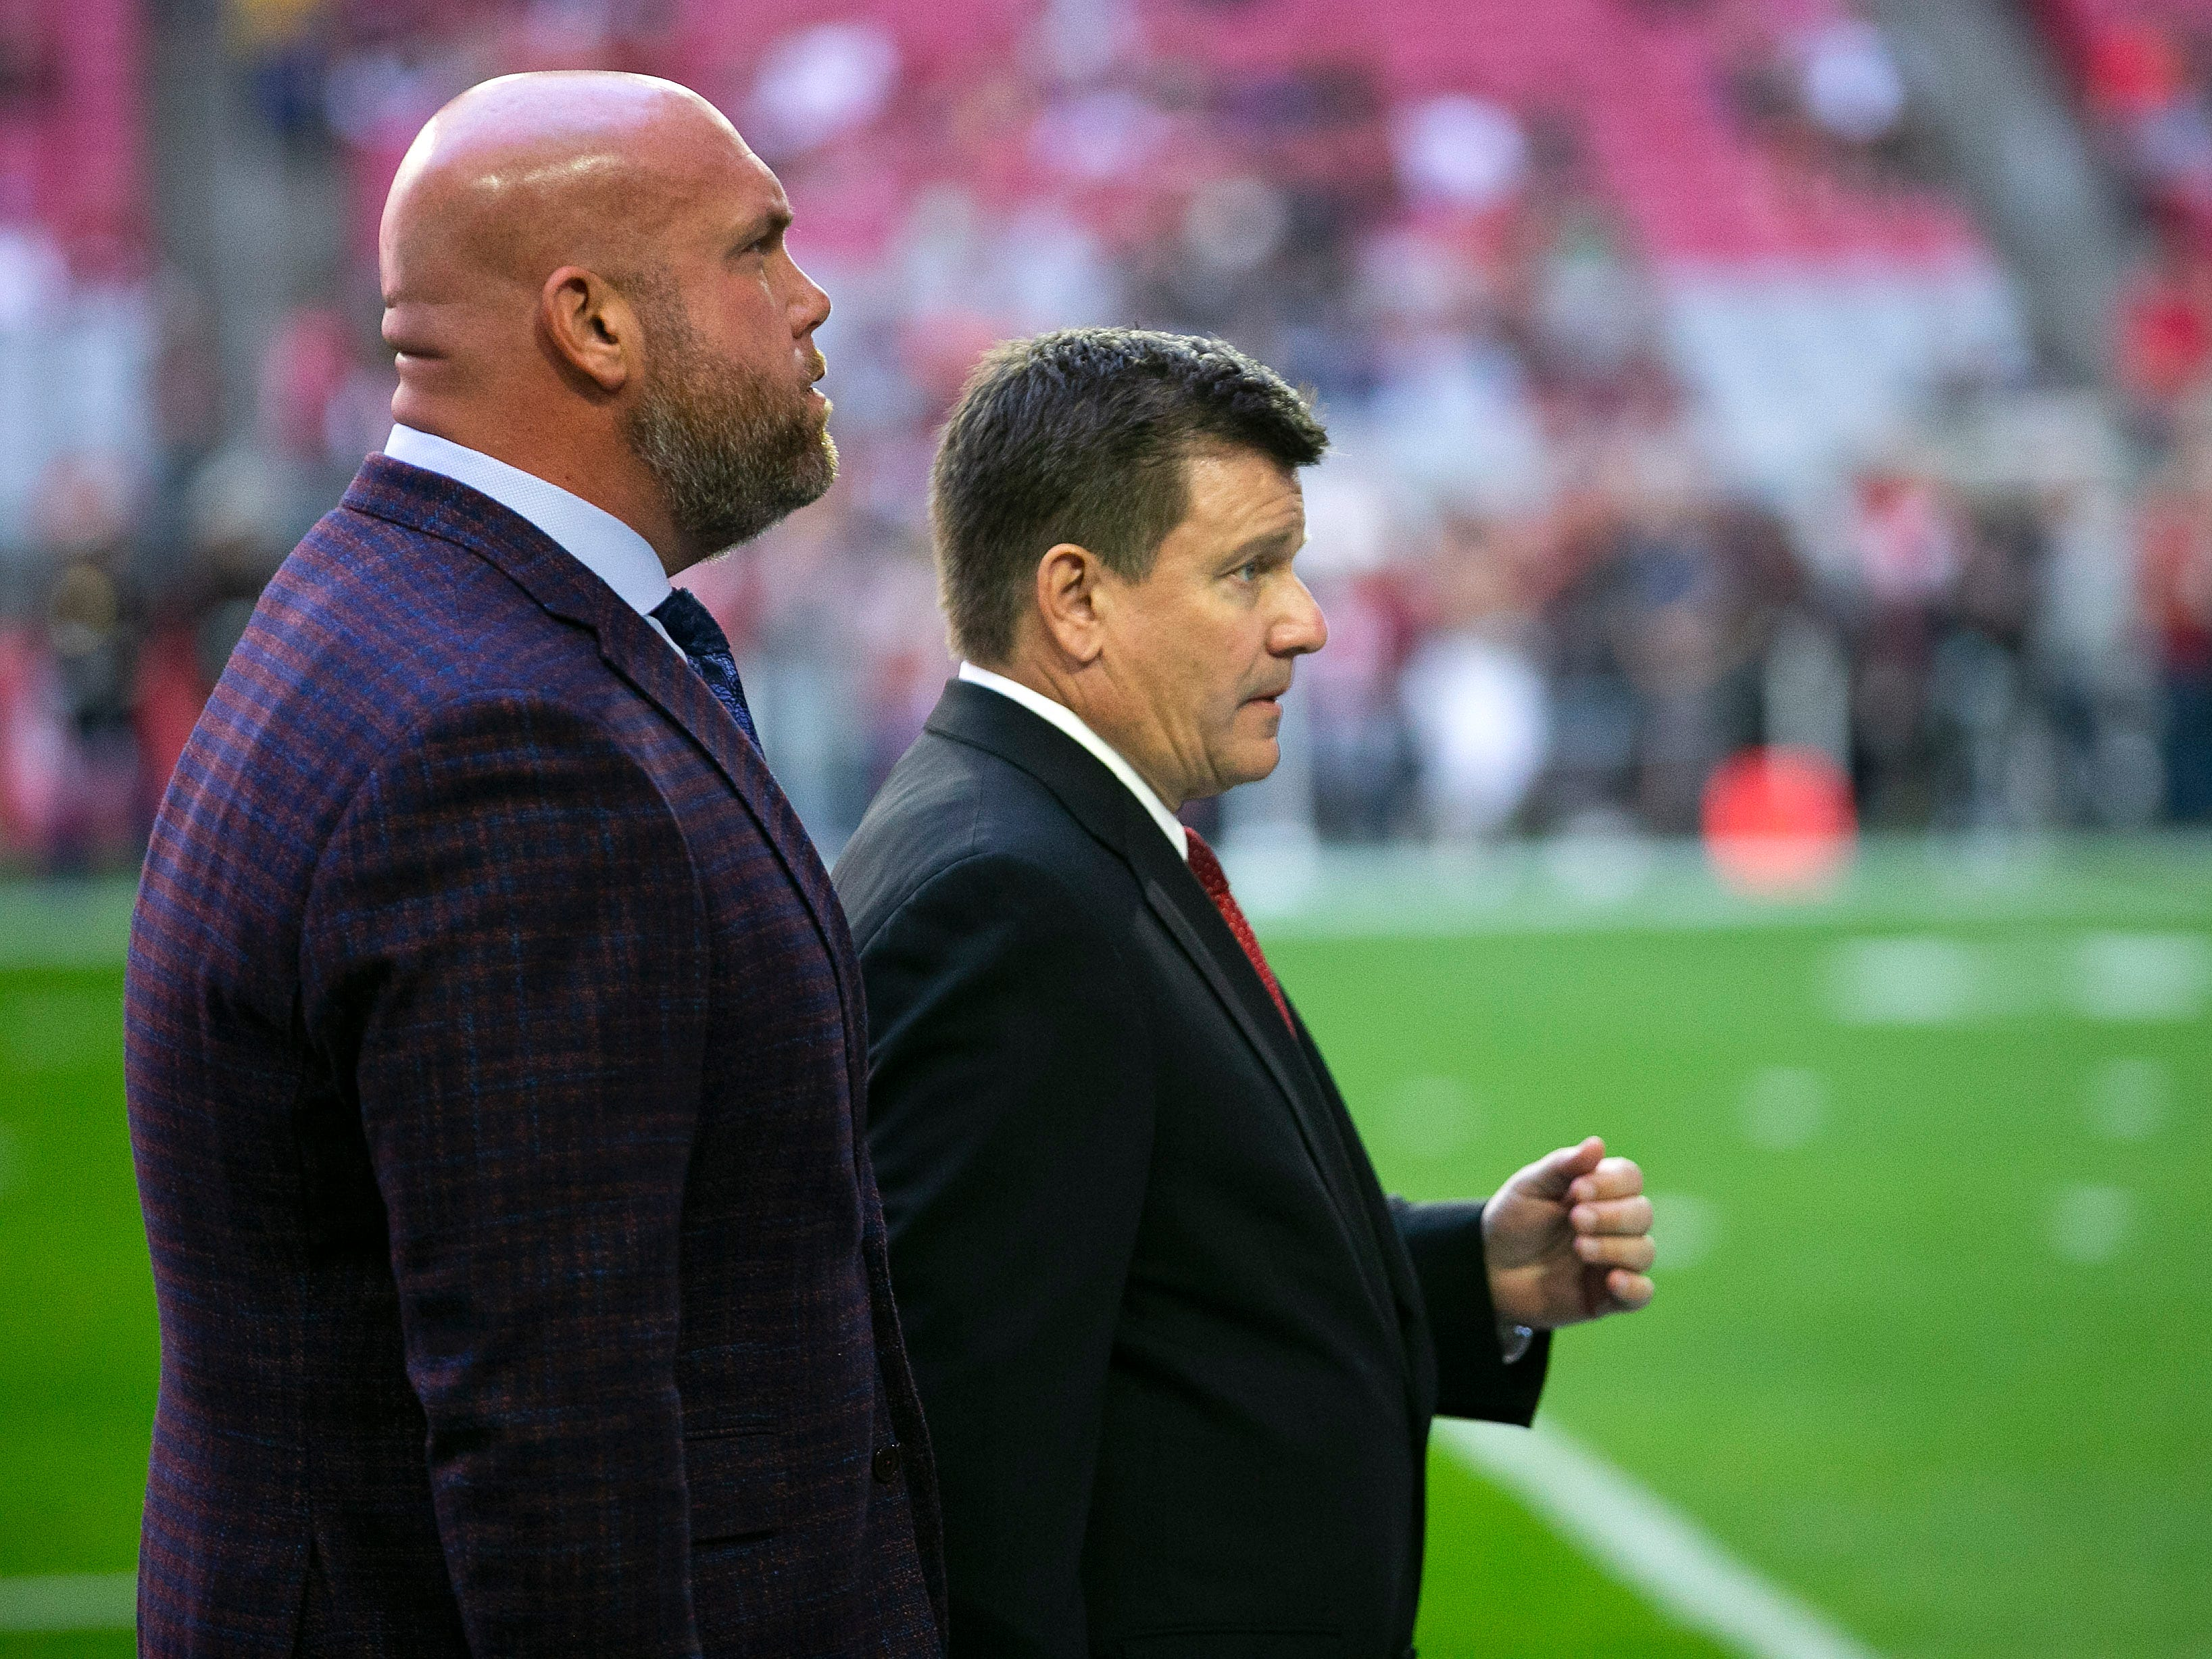 Cardinals general manager Steve Keim (left) and Cardinals president Michael Bidwill walk off the field before the pre-game routine before the start of the NFL game against the Rams at State Farm Stadium in Glendale on Sunday, December 23, 2018.